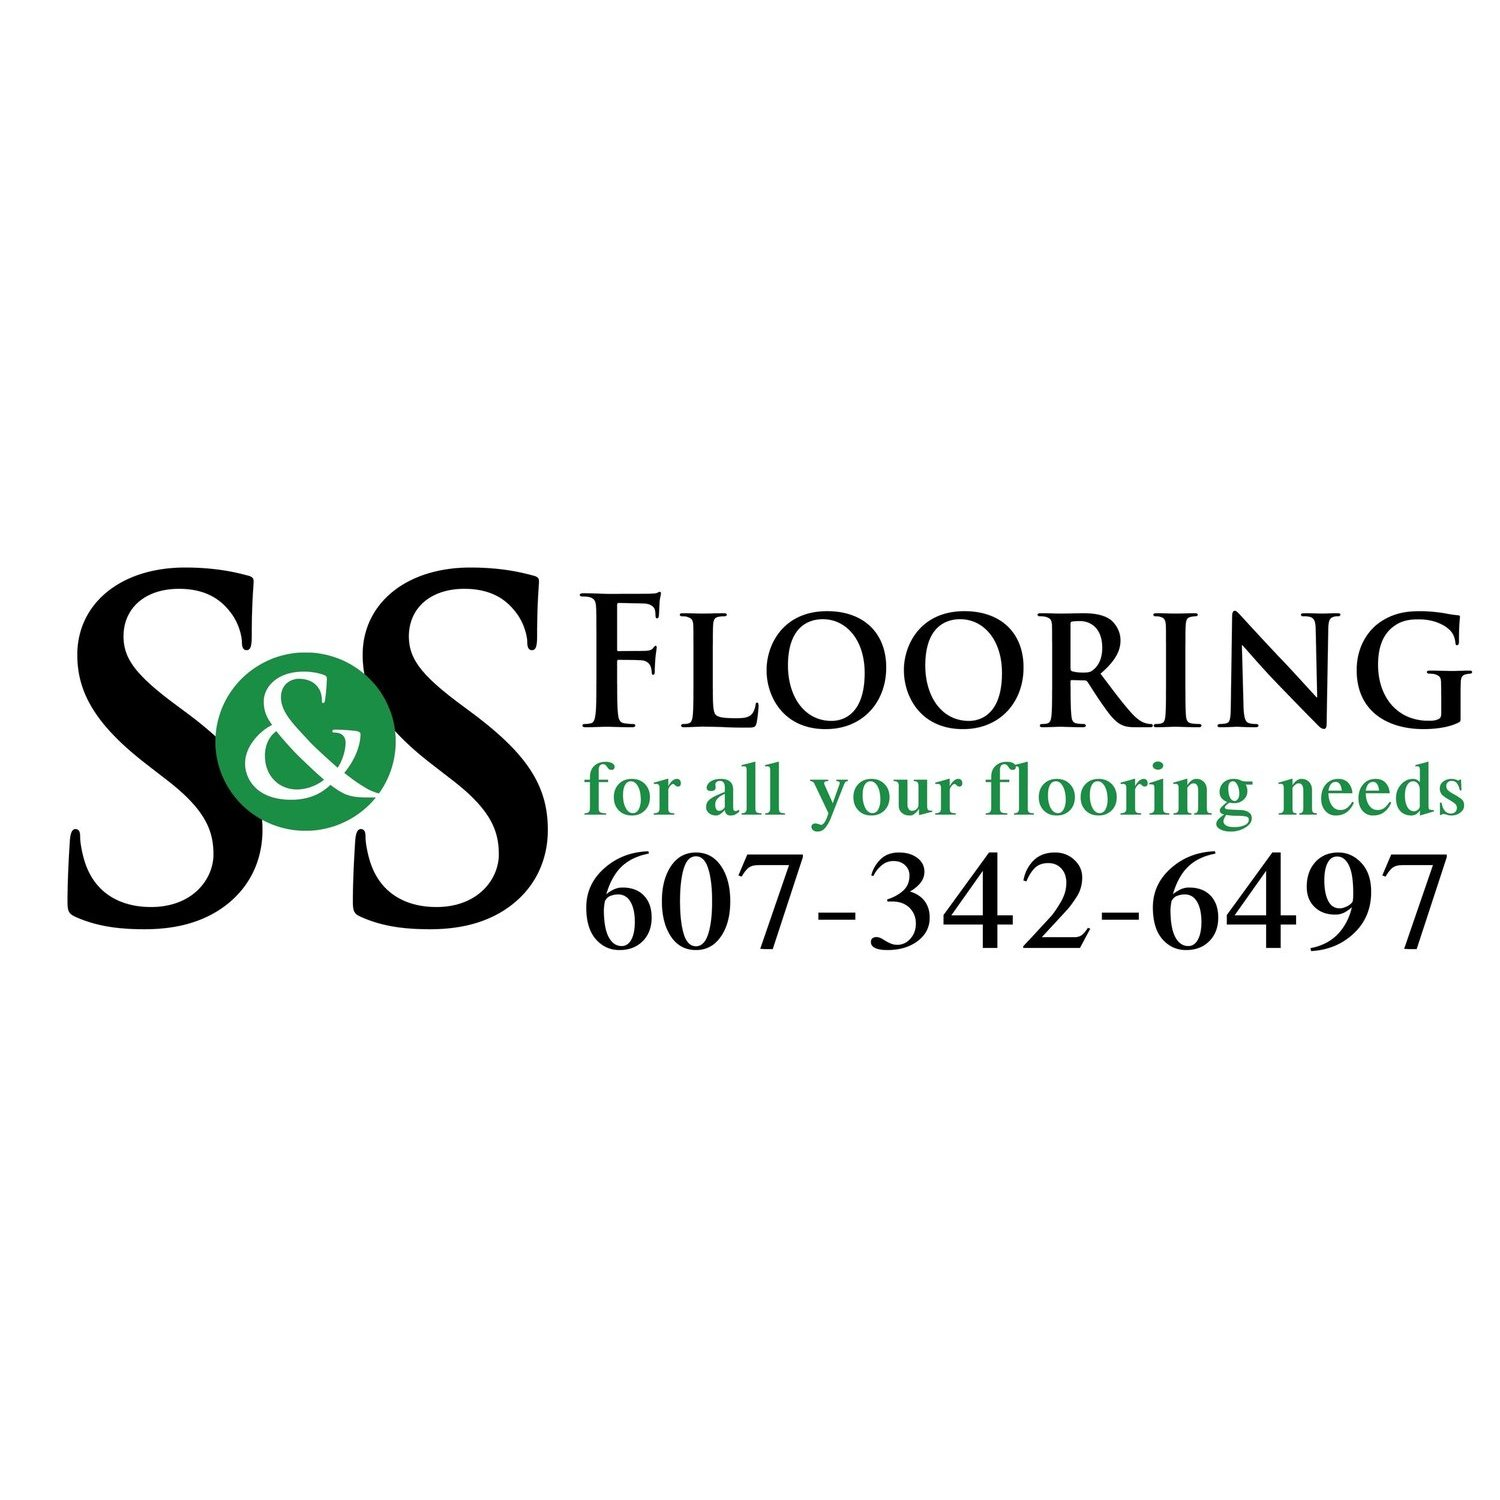 S&S Flooring Installations Inc